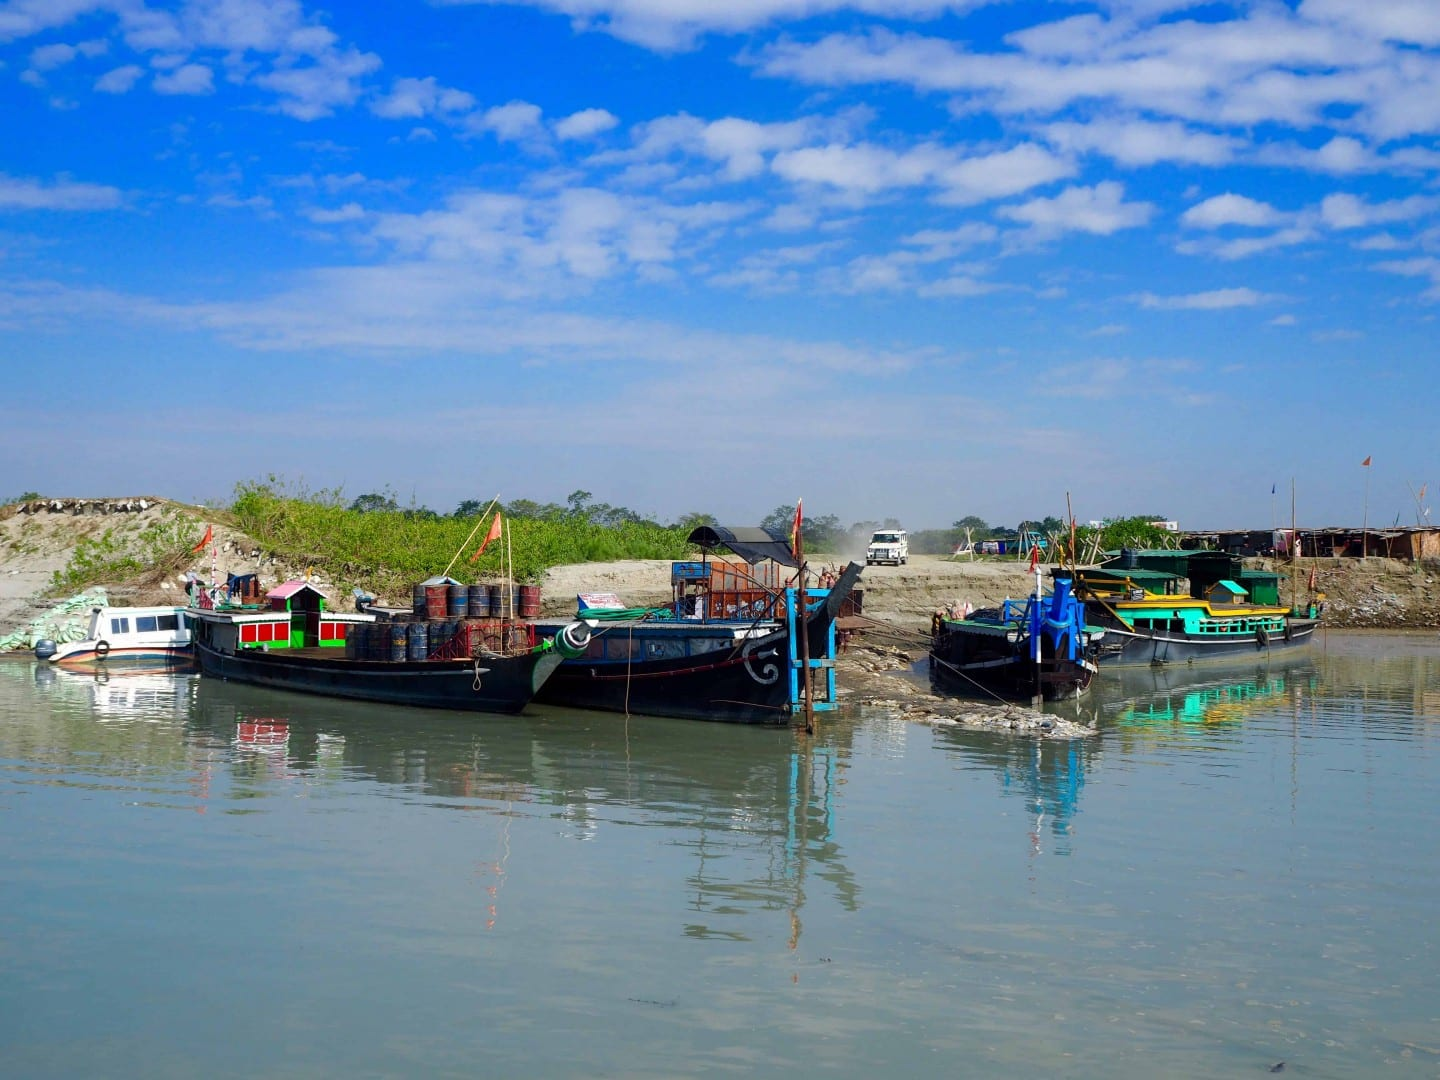 jorhat majuli island ferry 2018 times prices